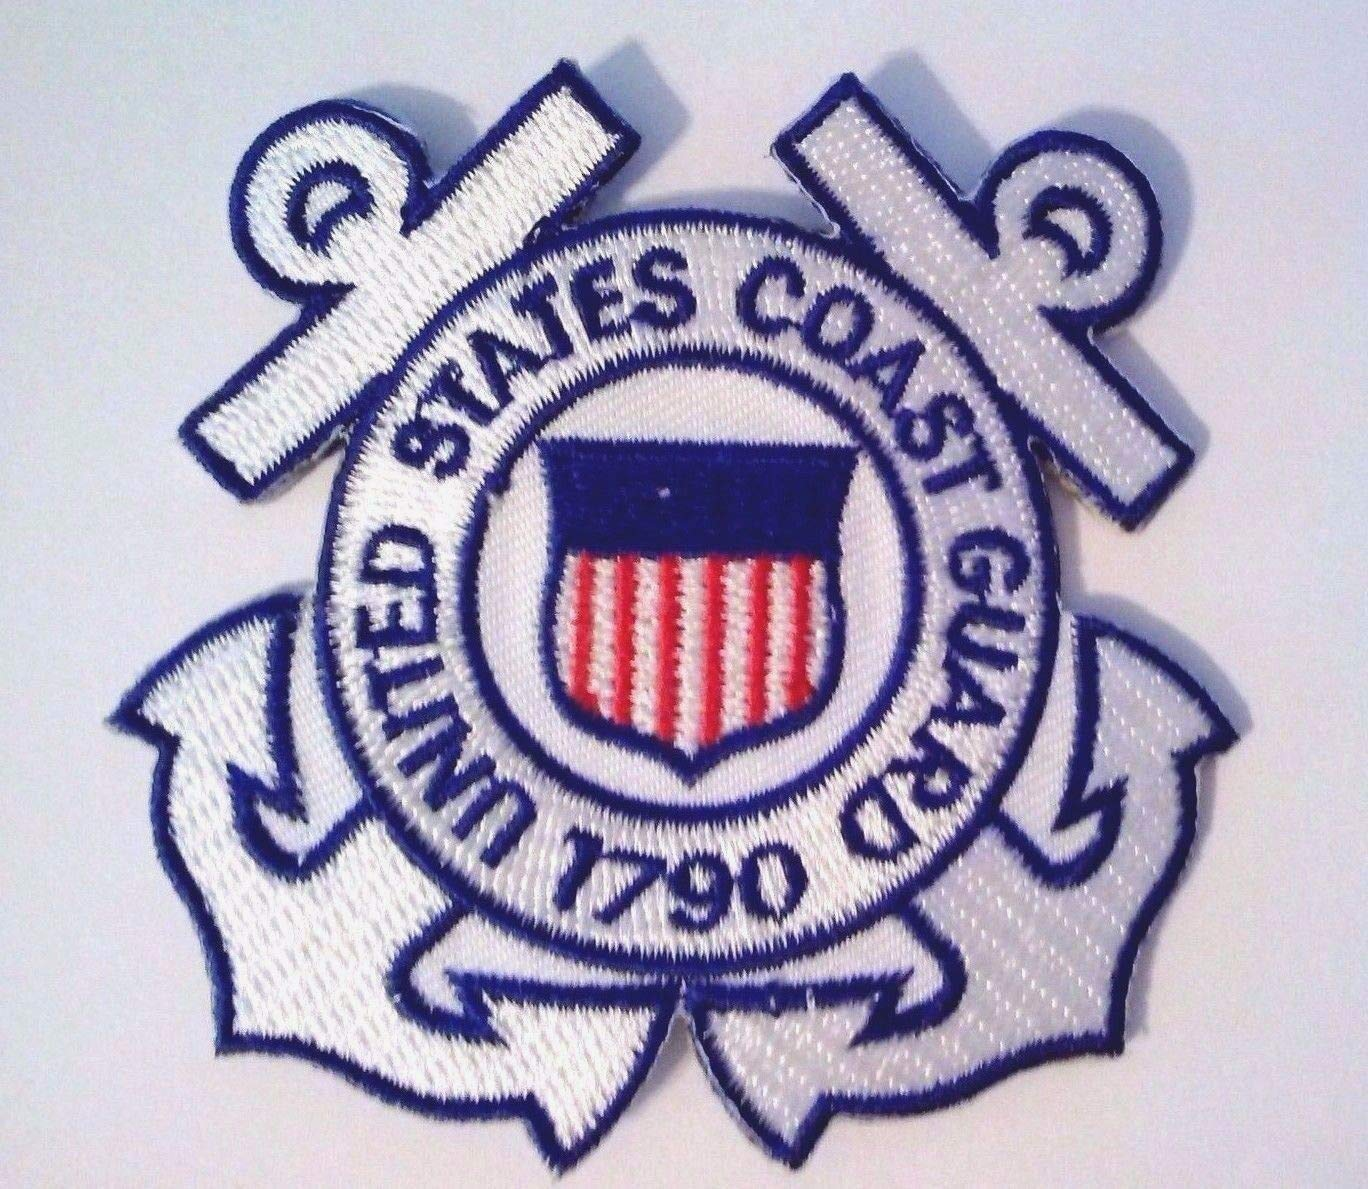 Embroidered Patch - Patches for Women Man - United States Coast Guard by Patcherer